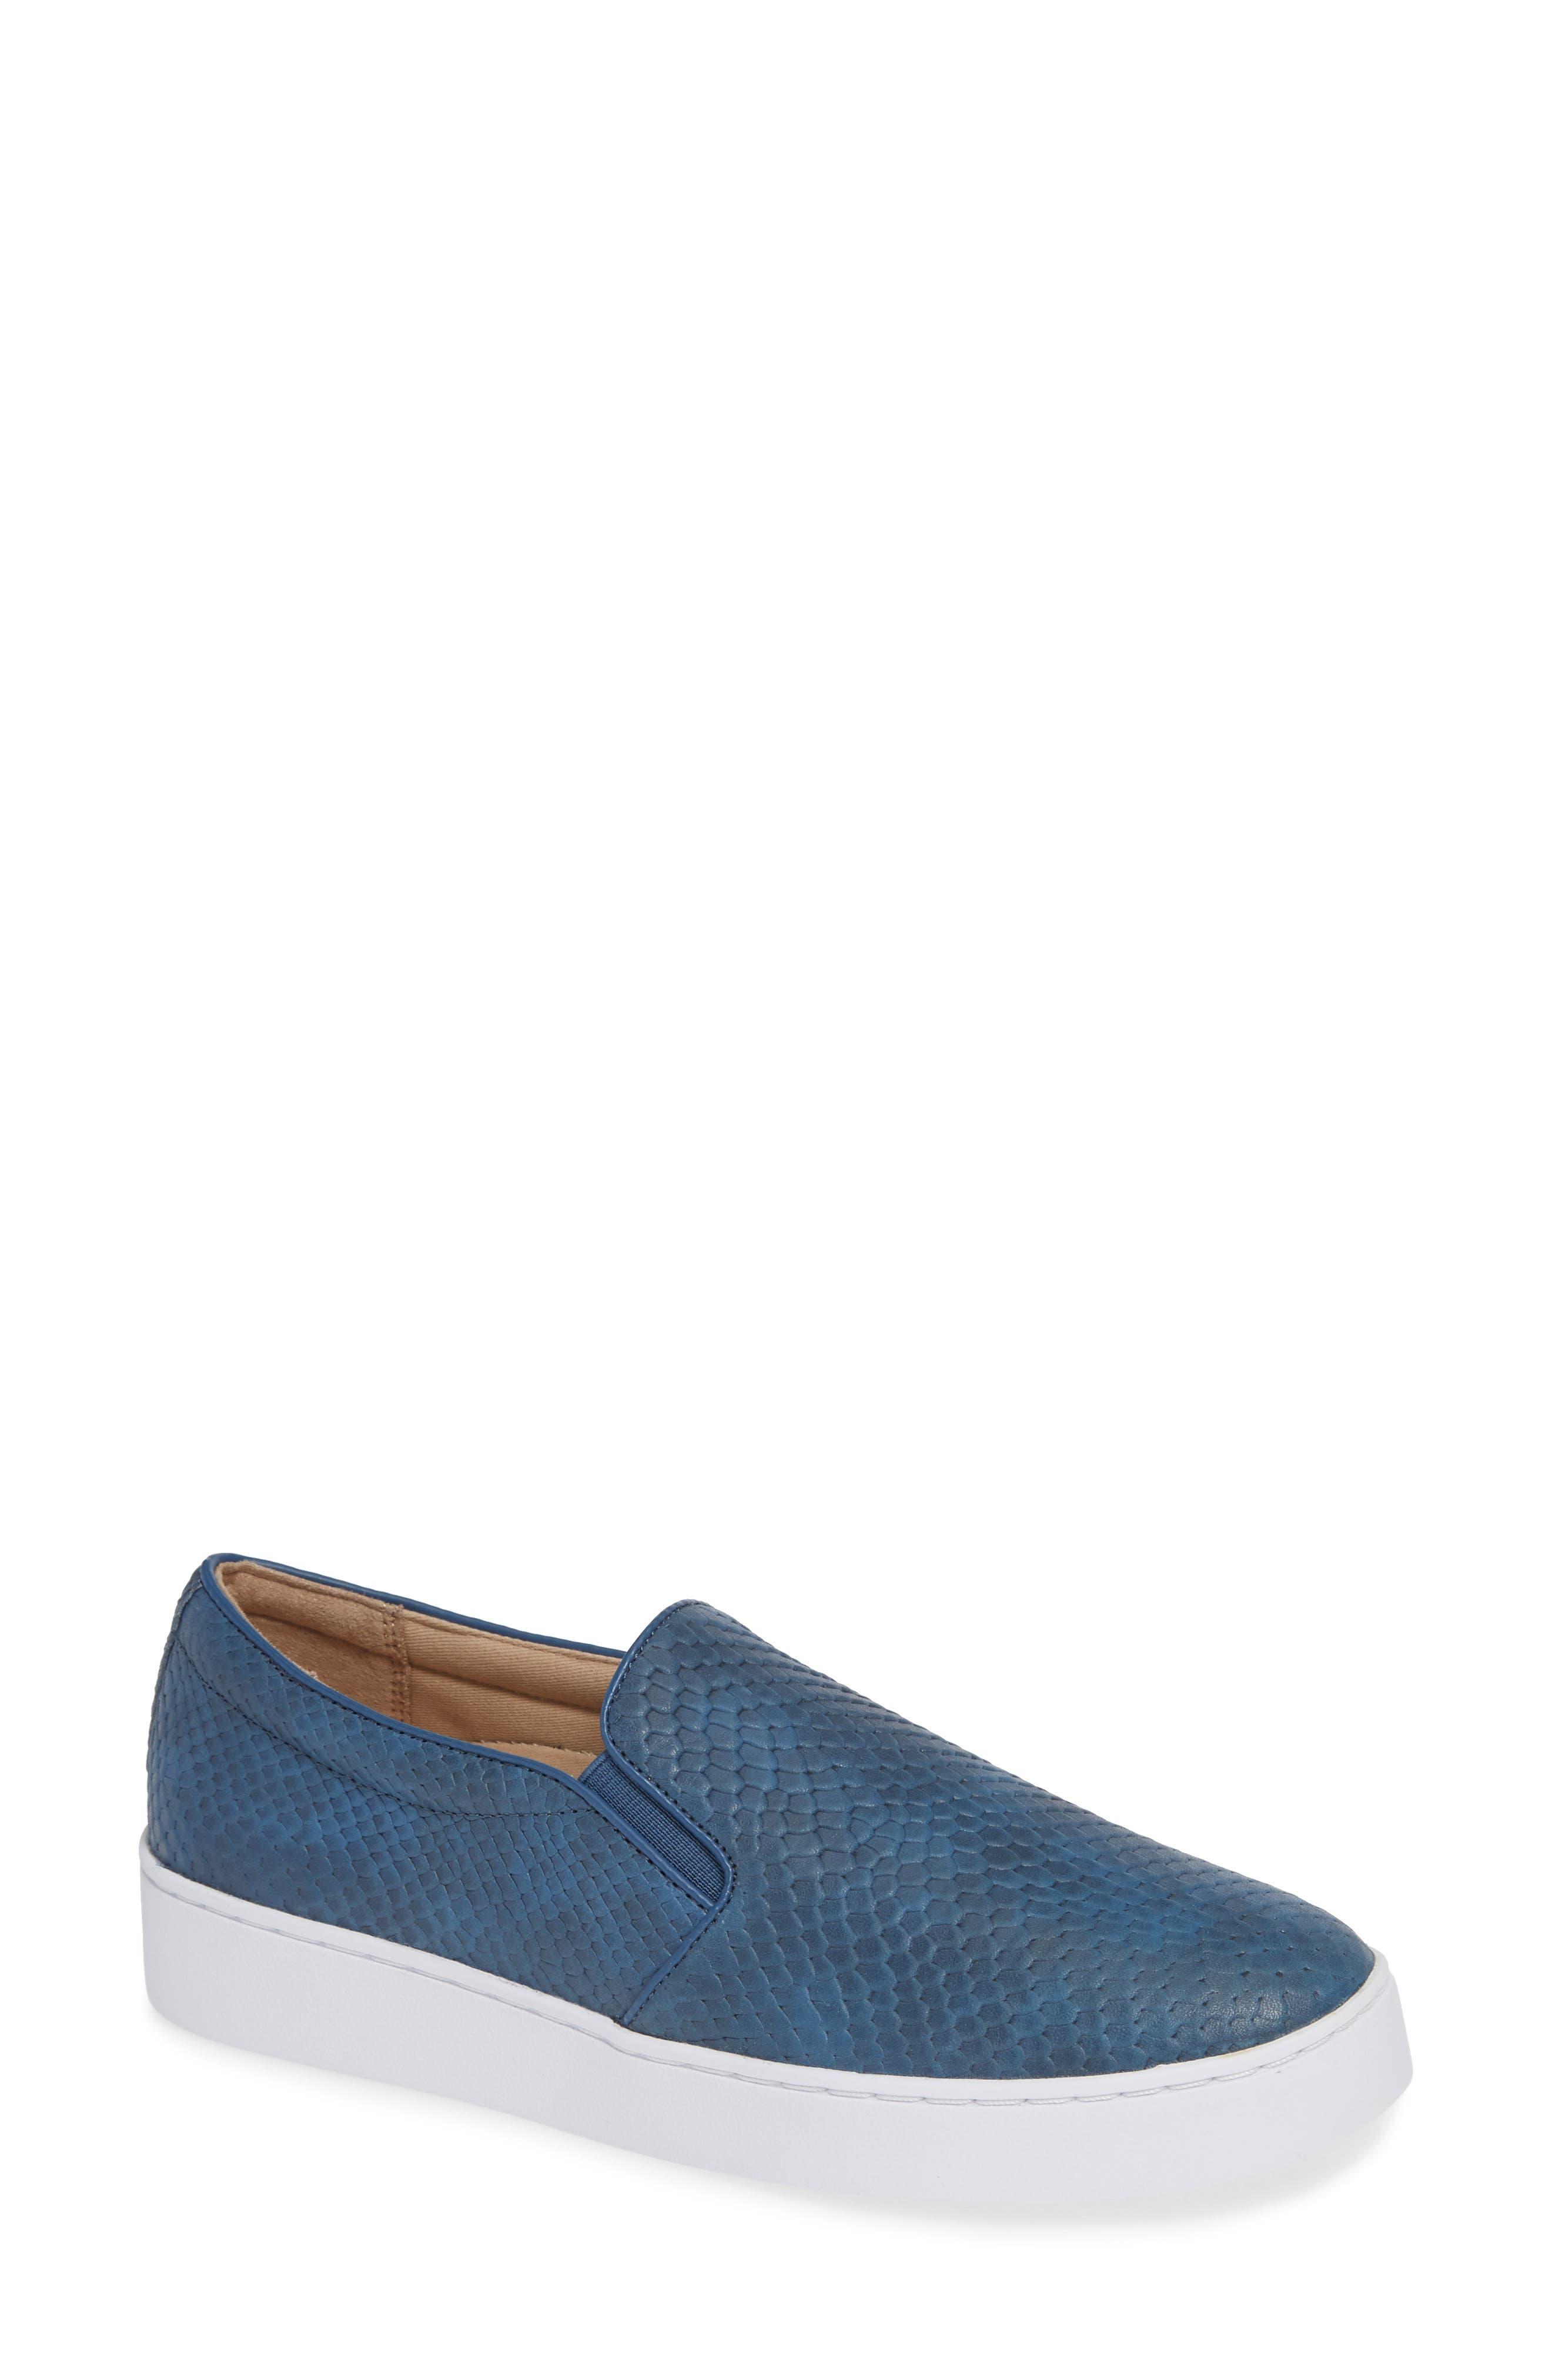 Midiperf Slip-On Shoe,                         Main,                         color, 401